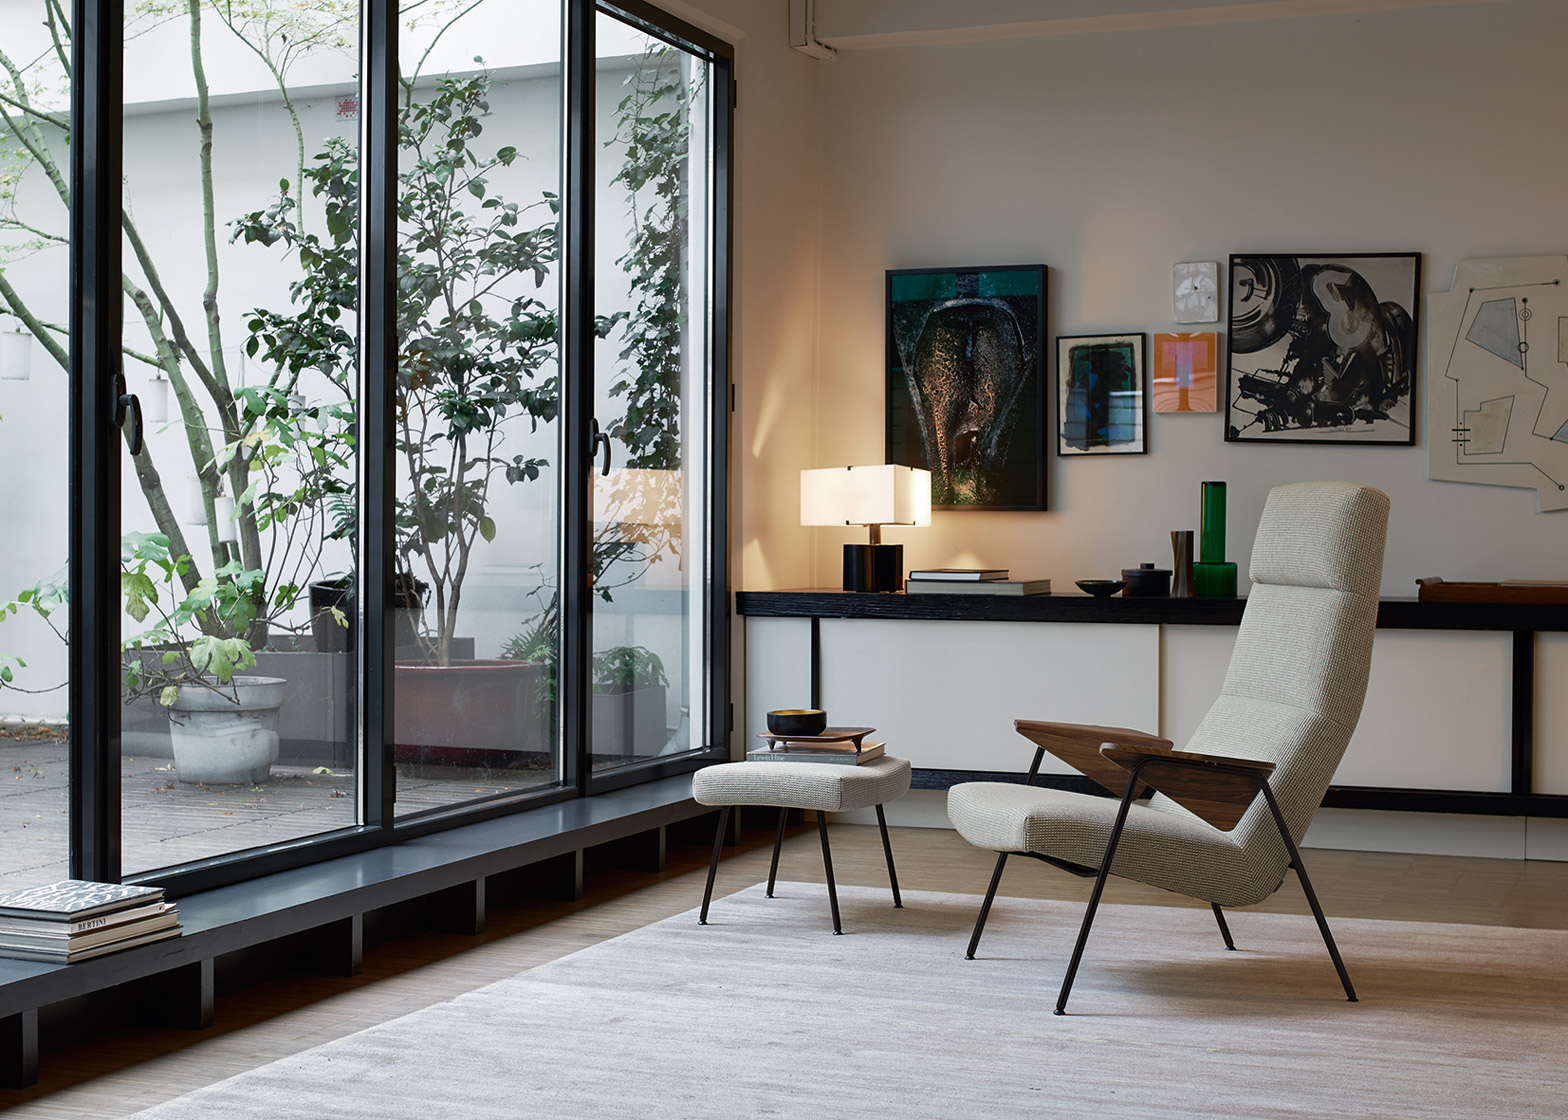 Ordinaire ... Furniture Collection By Walter Knoll